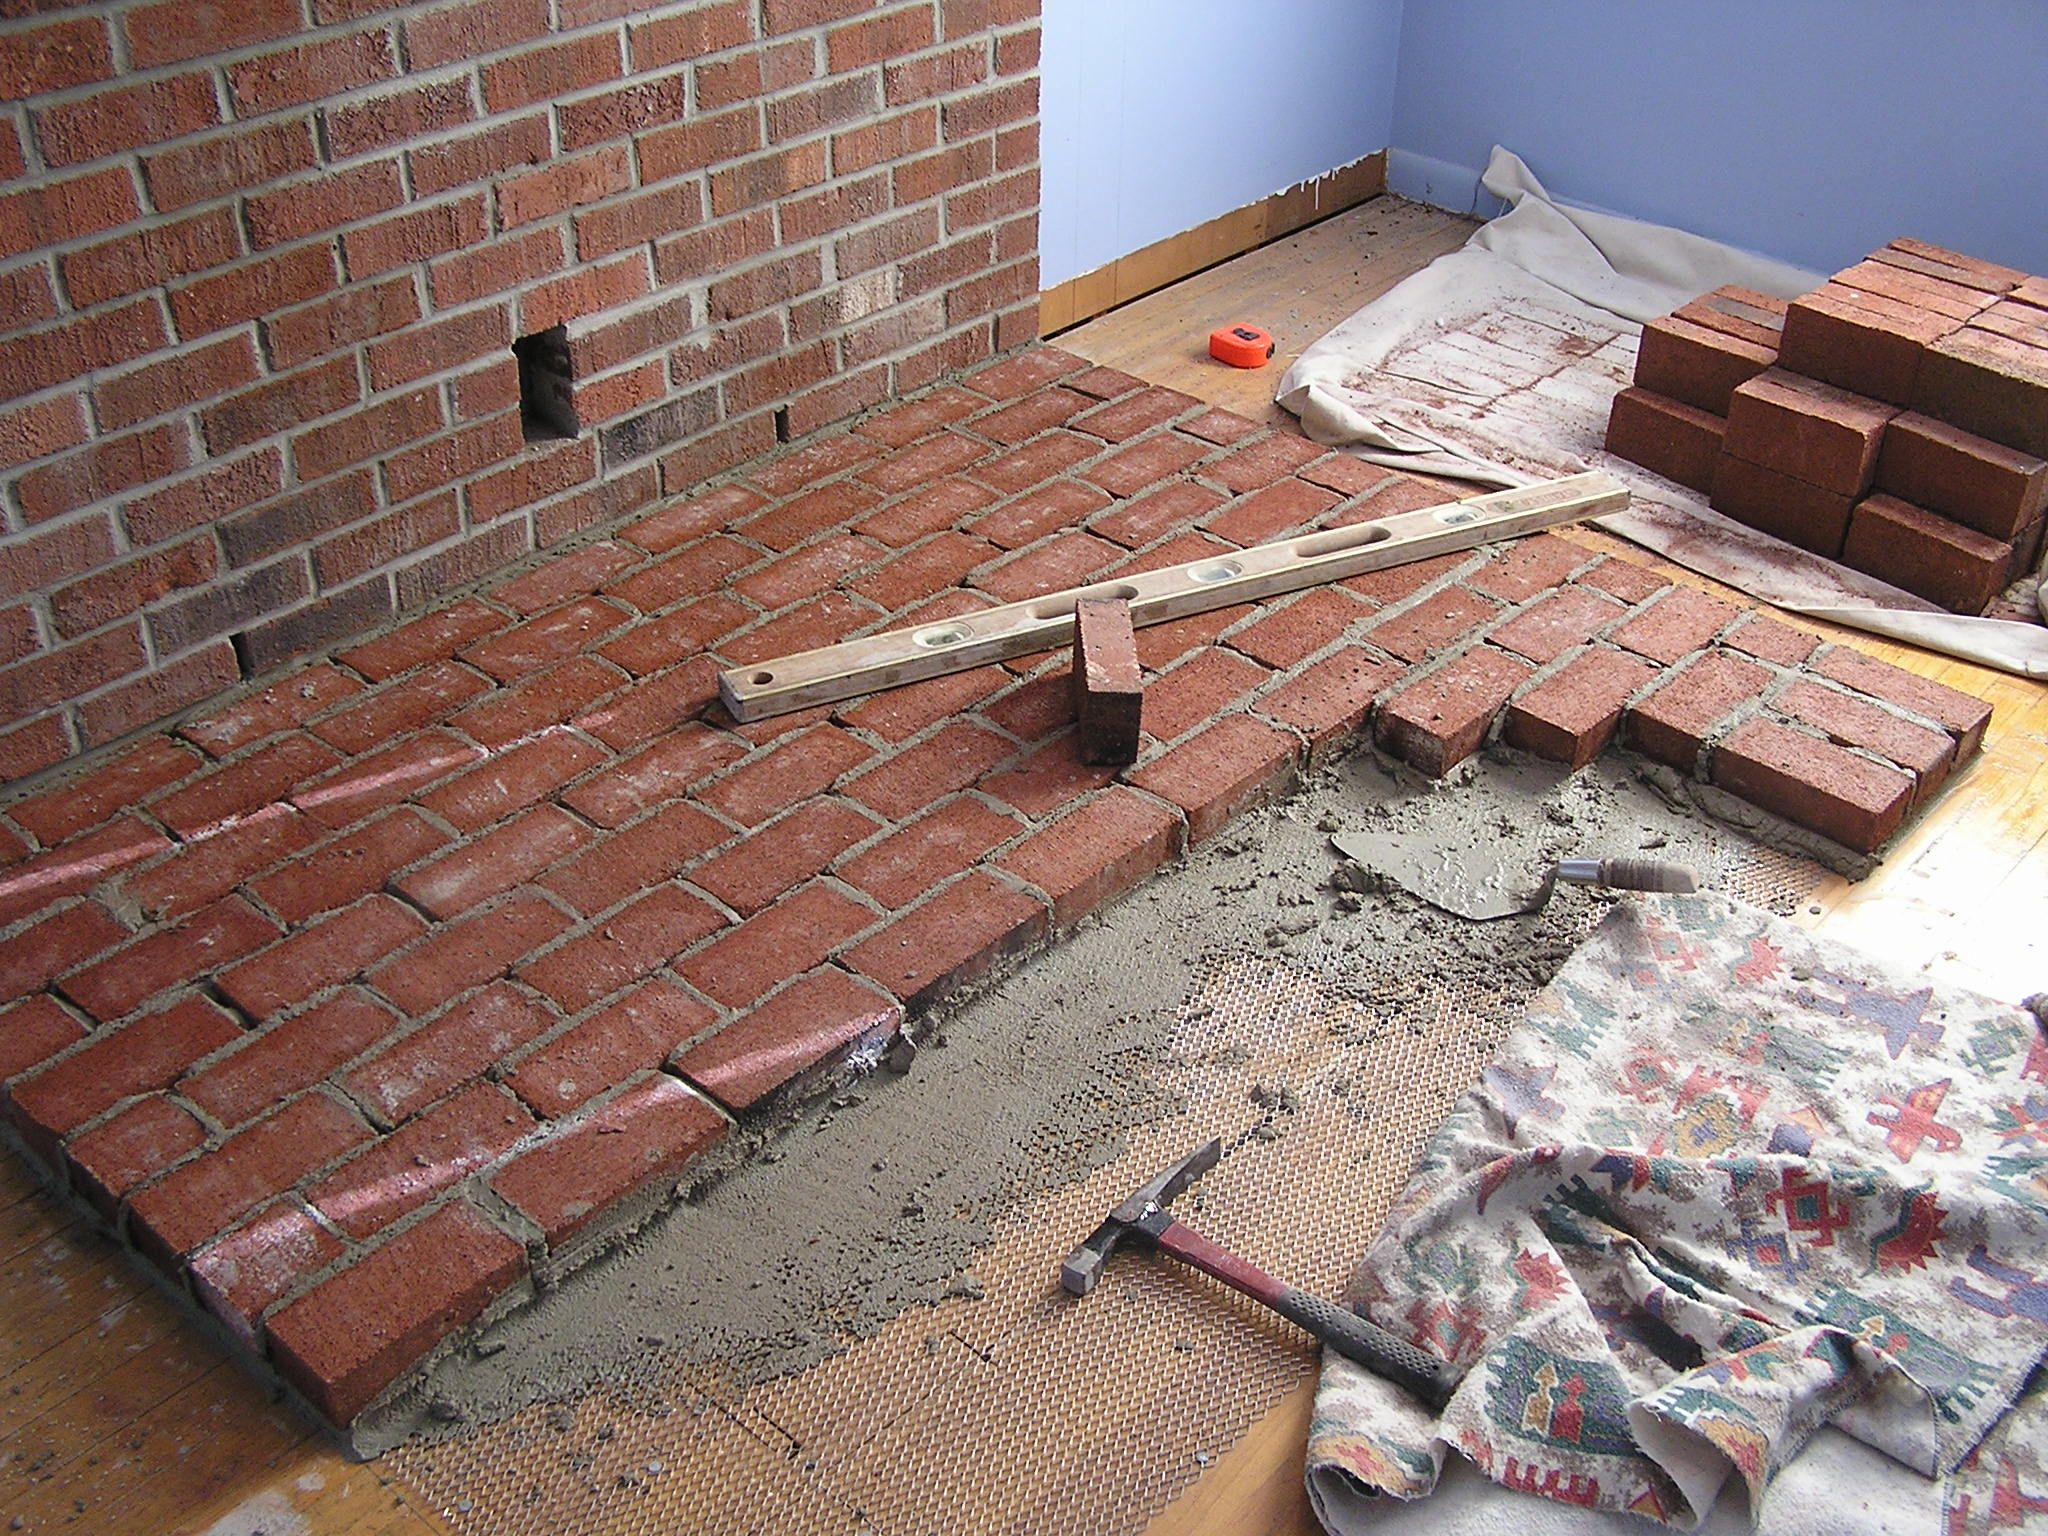 Wood Fireplace Construction Construction Of The Brick Hearth For Free Standing Wood